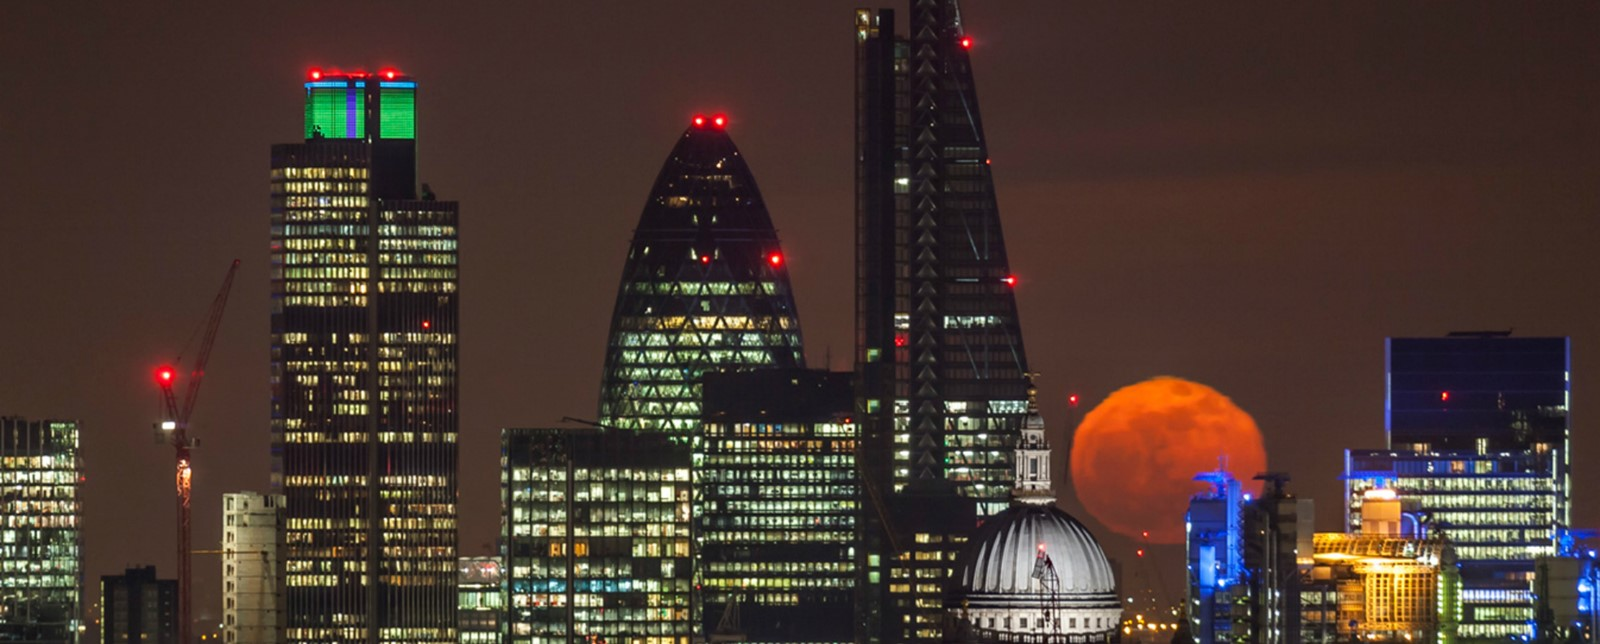 London skyline on a night with a blood moon